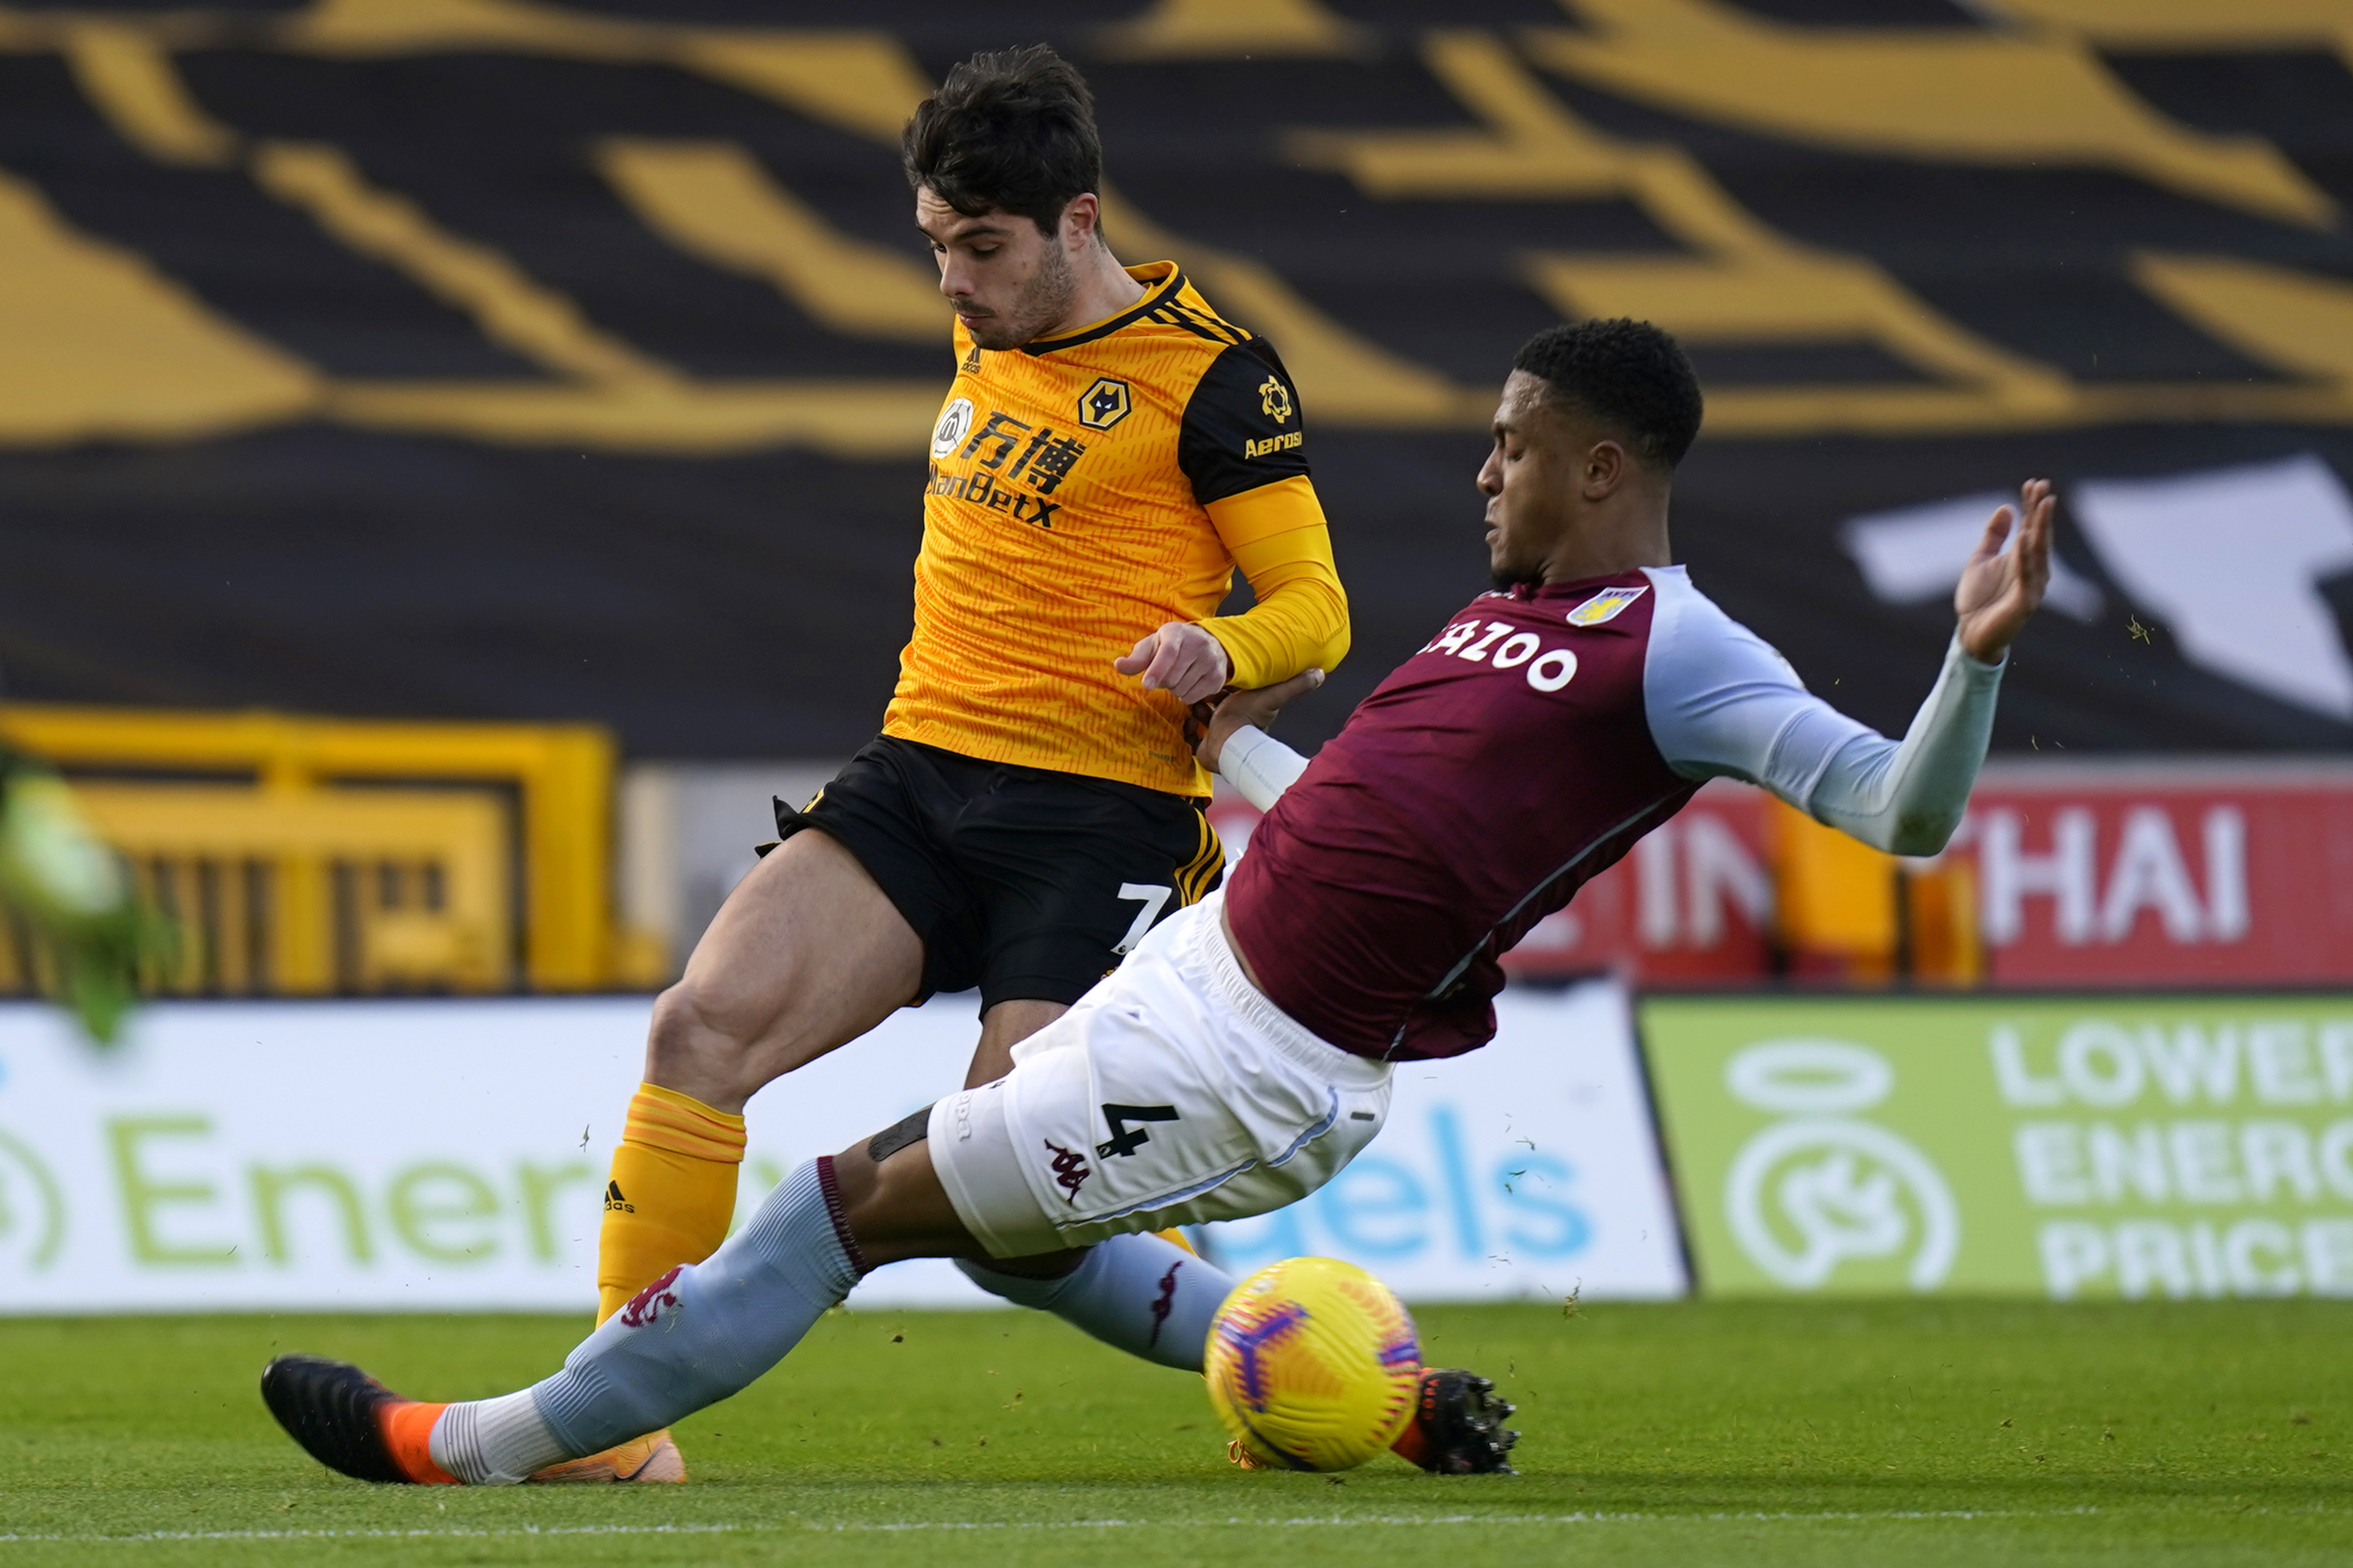 Aston Villa's Konsa is in talks over a new contract (Konsa is in action in the picture)